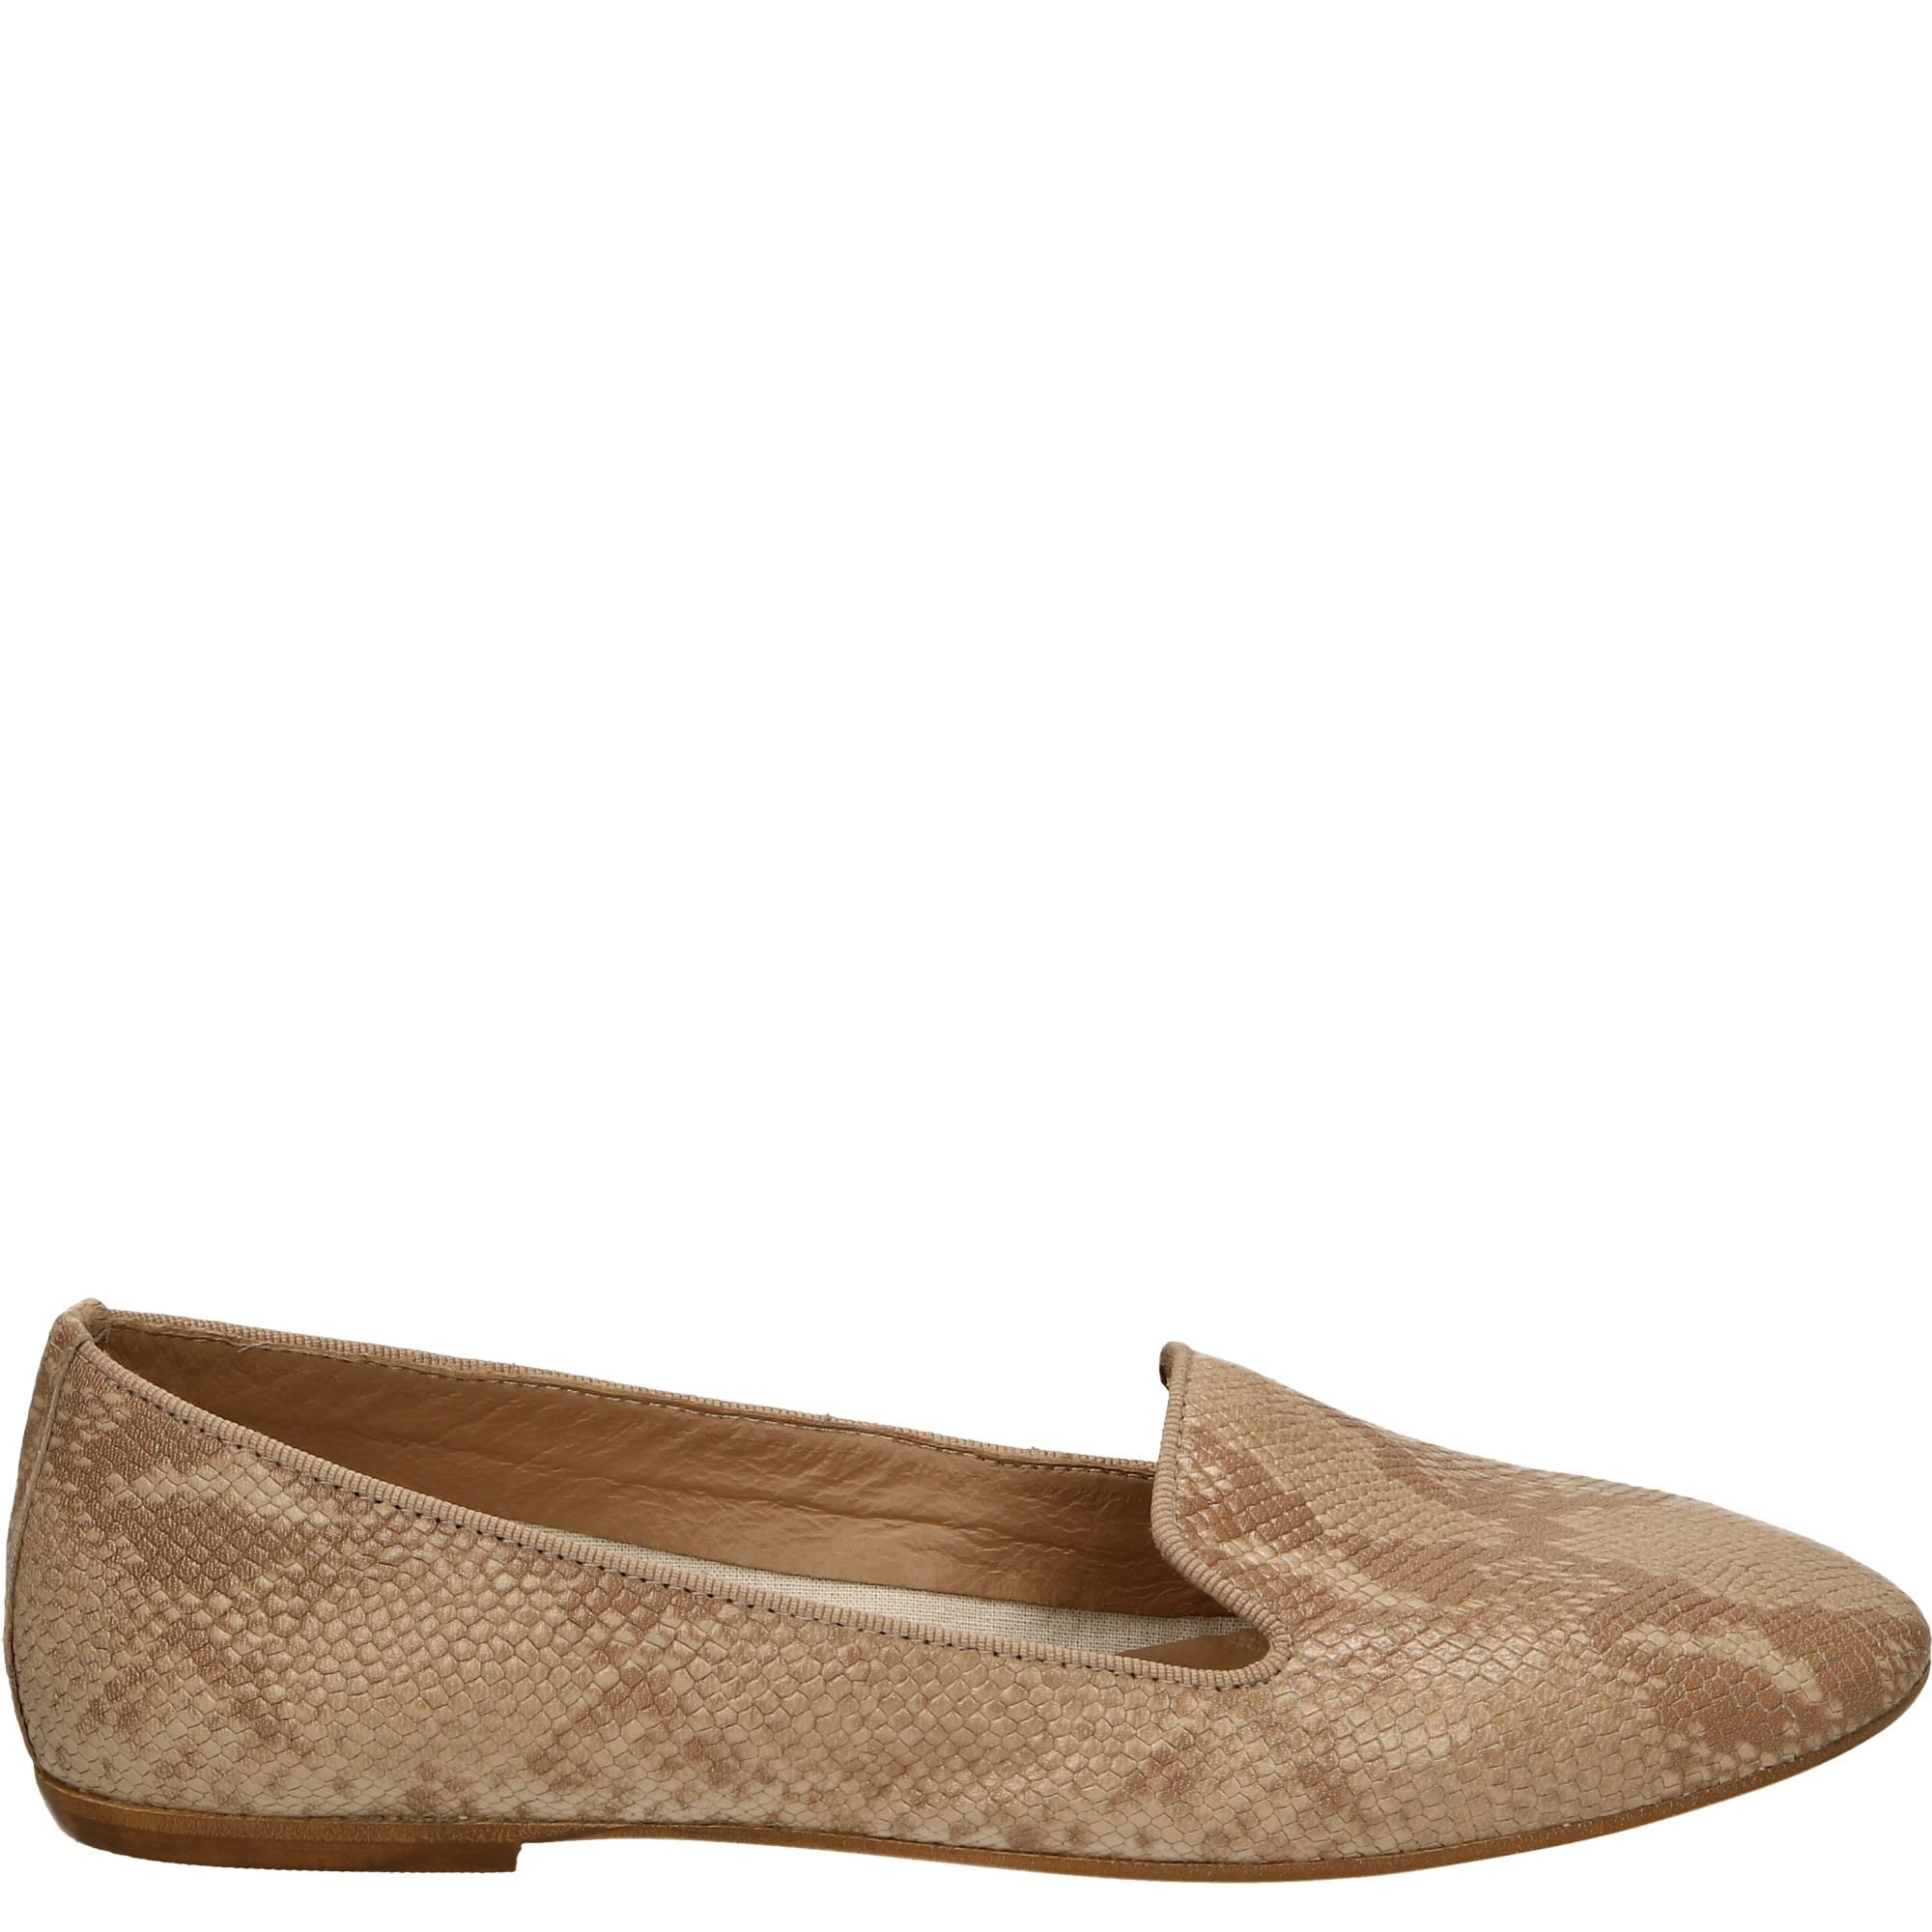 Baleriny Lordsy 1853 Ret Carn Shoes Fashion Loafers